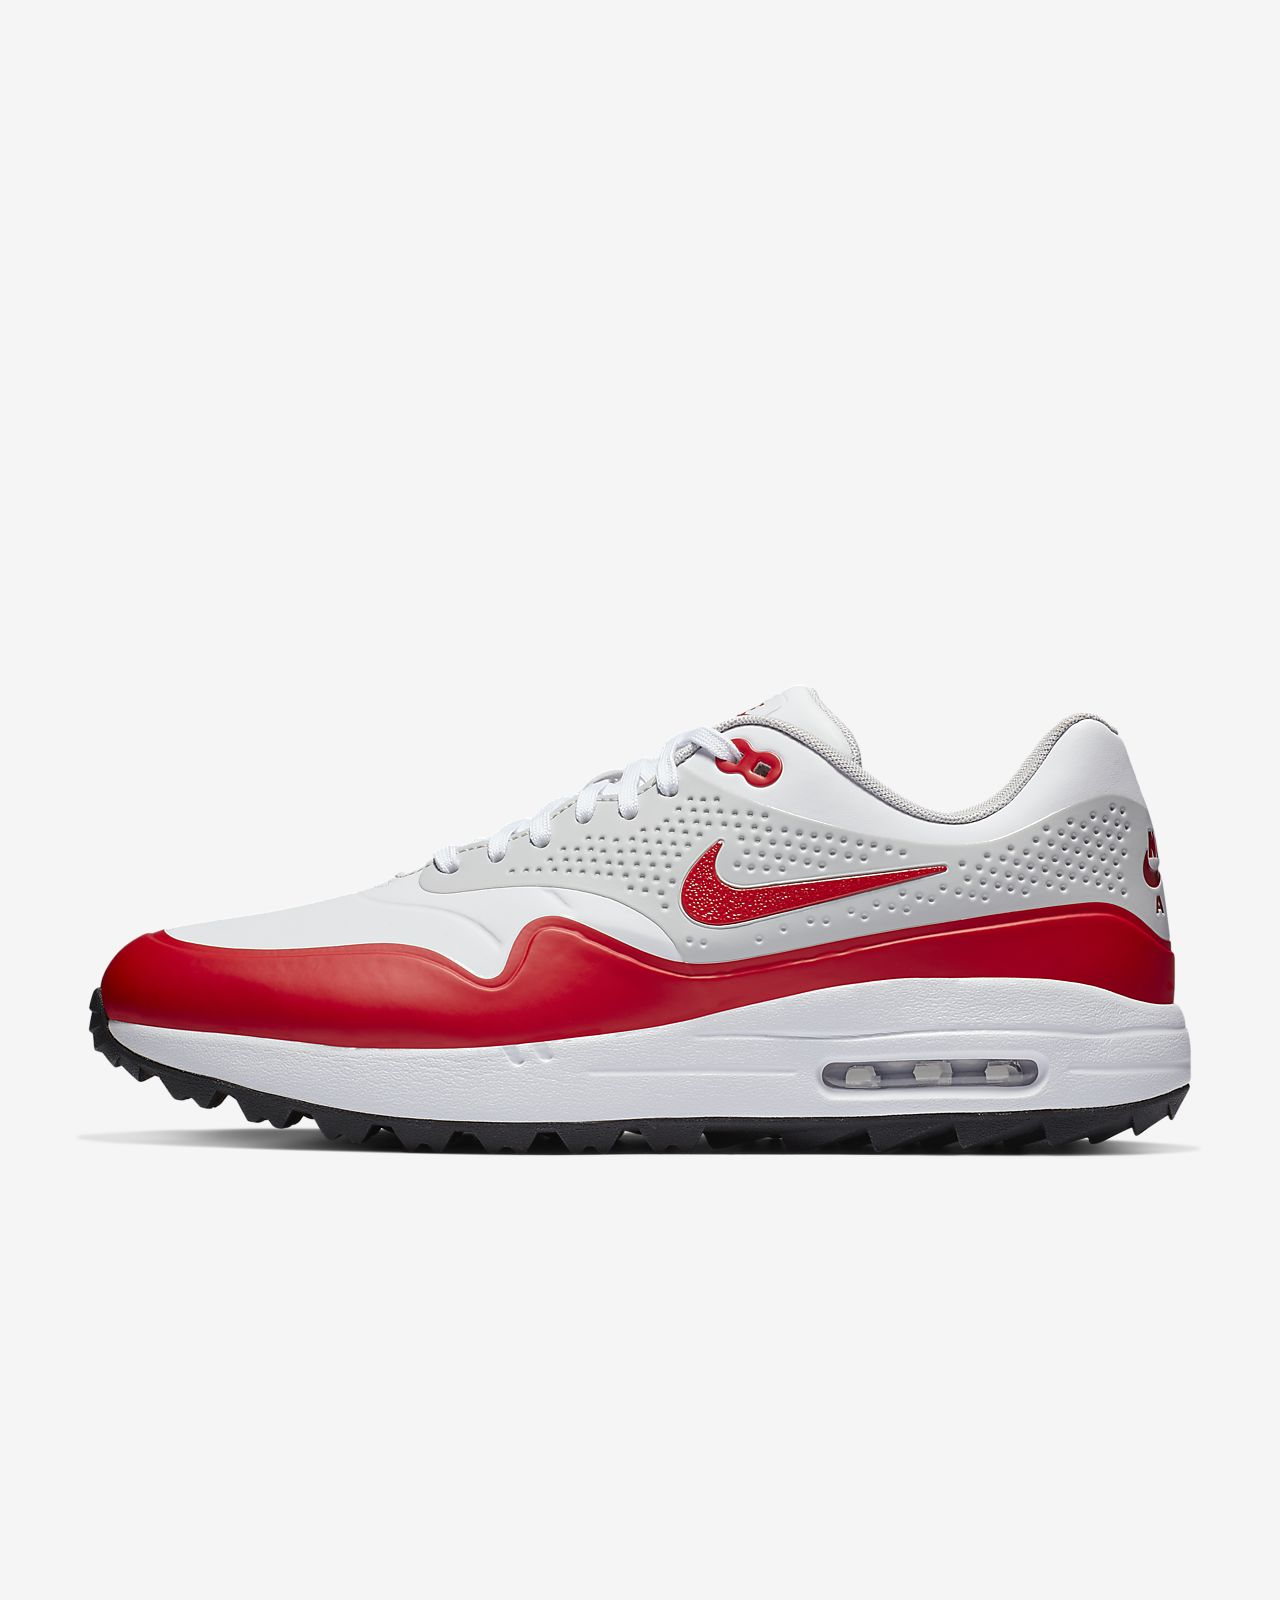 042f9b96 Nike Air Max 1 G Men's Golf Shoe. Nike.com GB